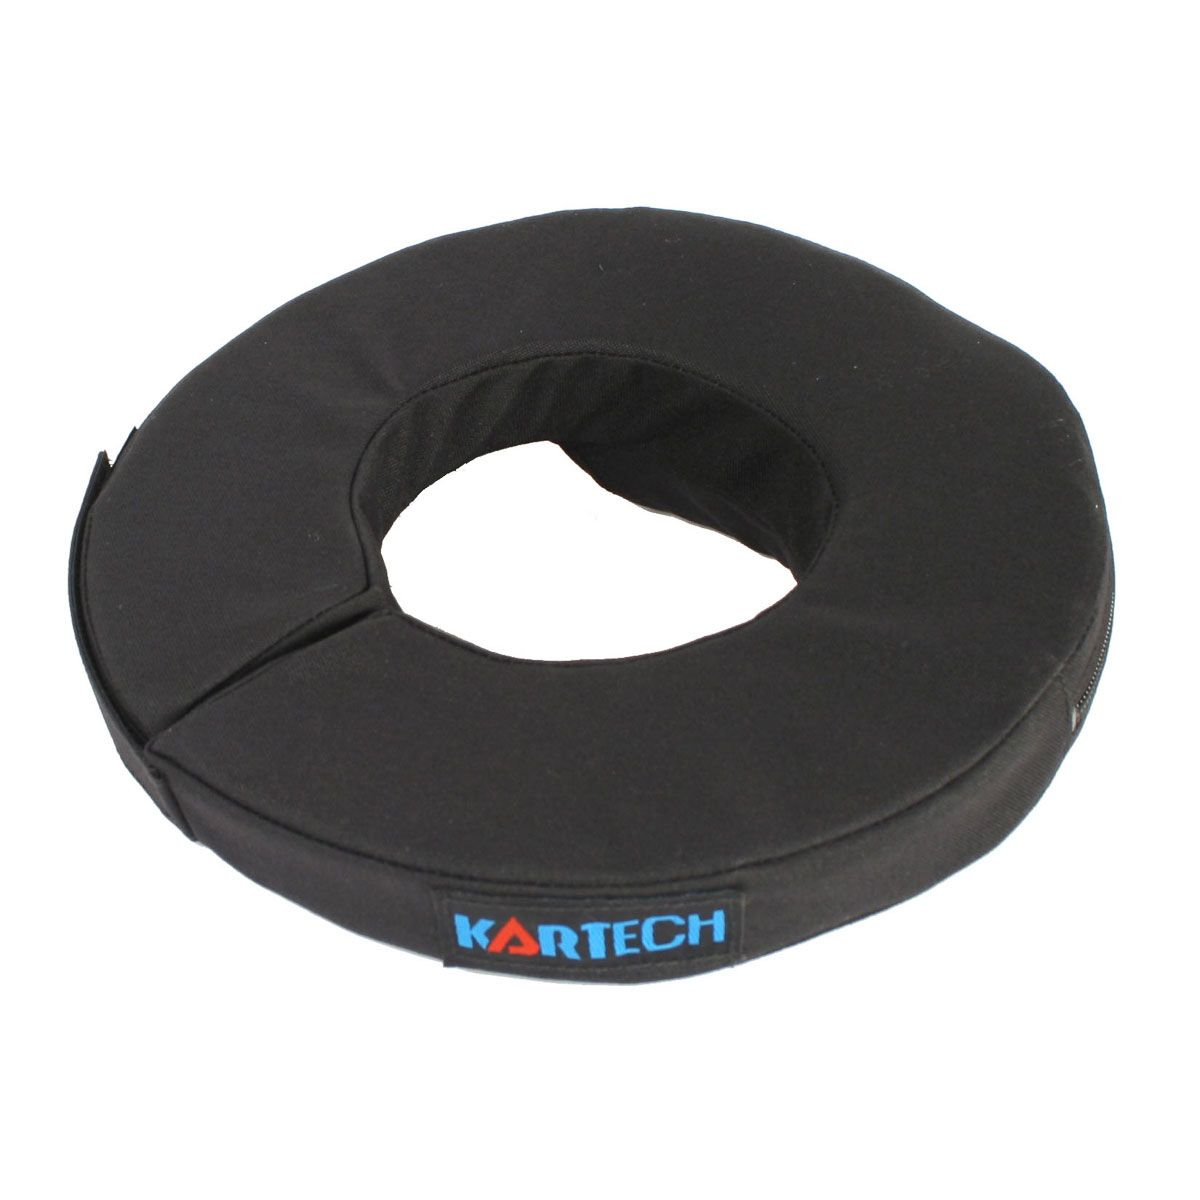 Kartech Neck Brace Senior 25mm Black